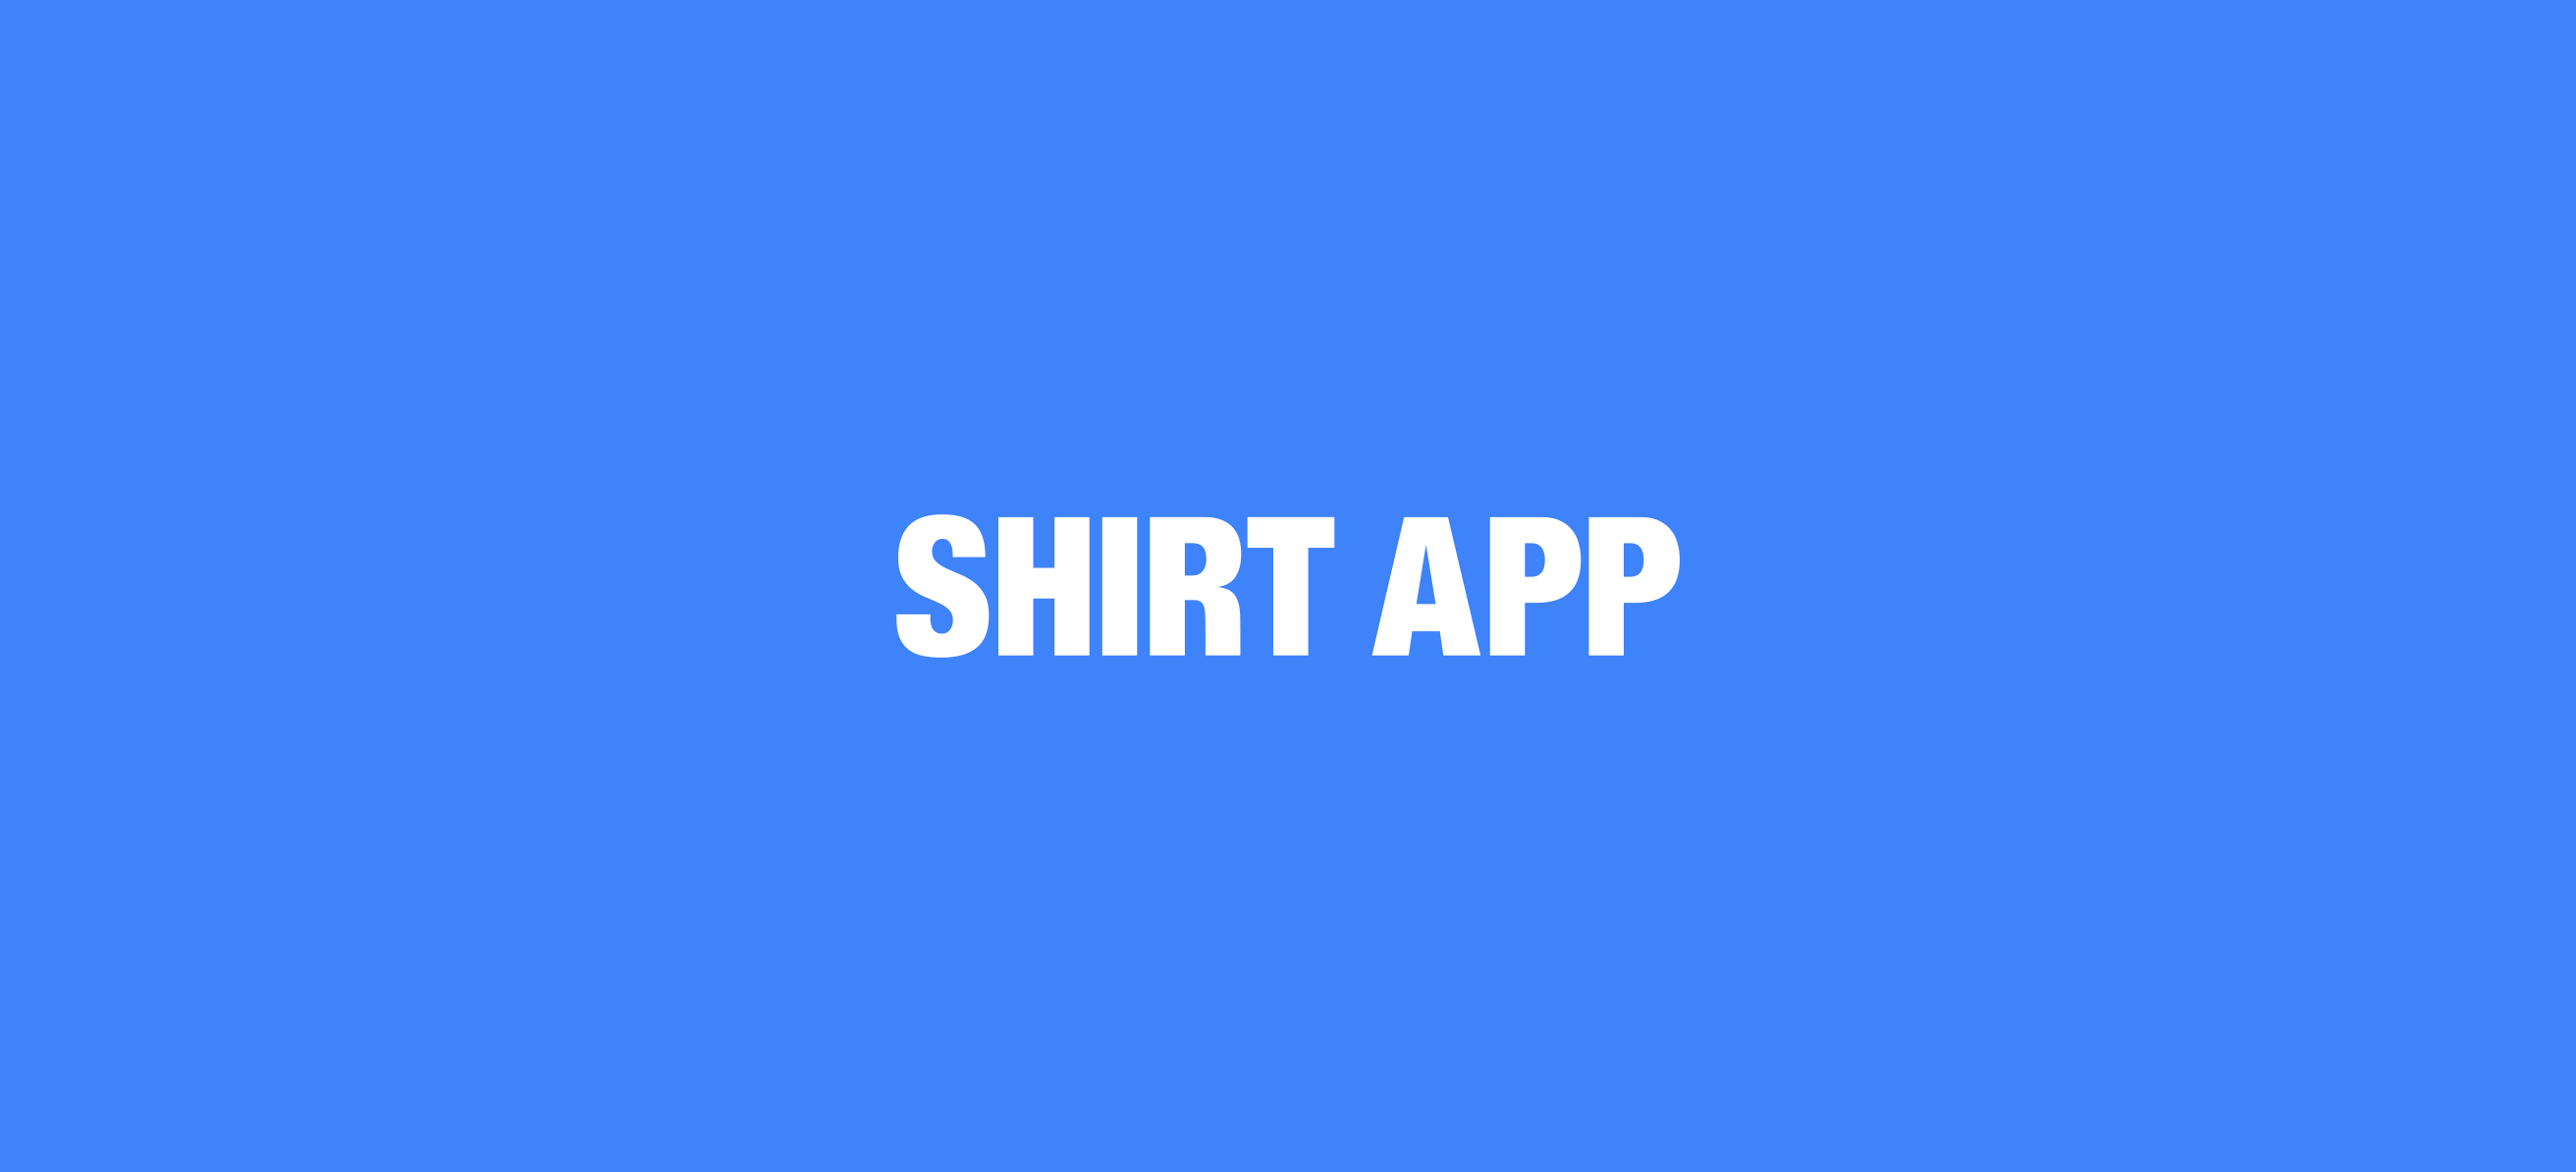 'Shirt App' Clothing App